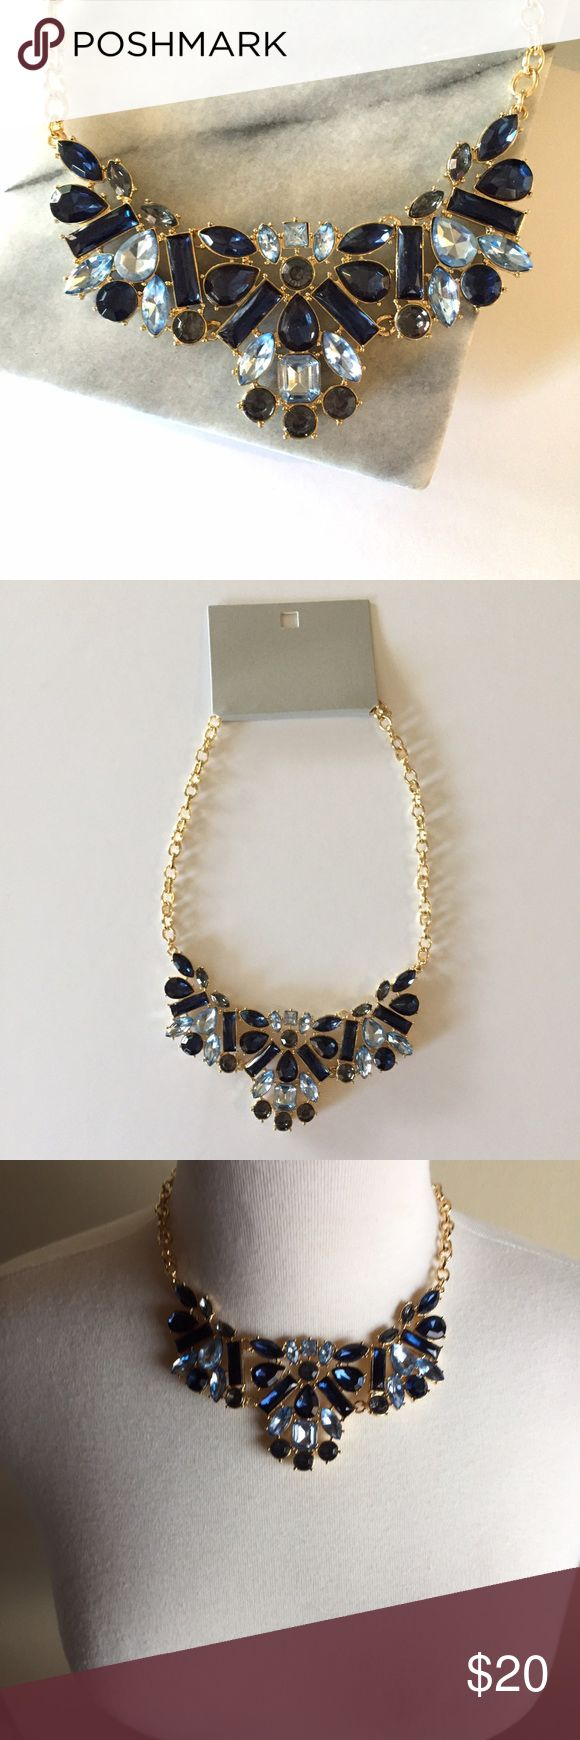 Jeweled statement necklace • navy blue and gold Gorgeous piece in light blue and navy blue with a gold tone adjustable chain. Makes a perfect gift! Brand new with tag. Jewelry Necklaces